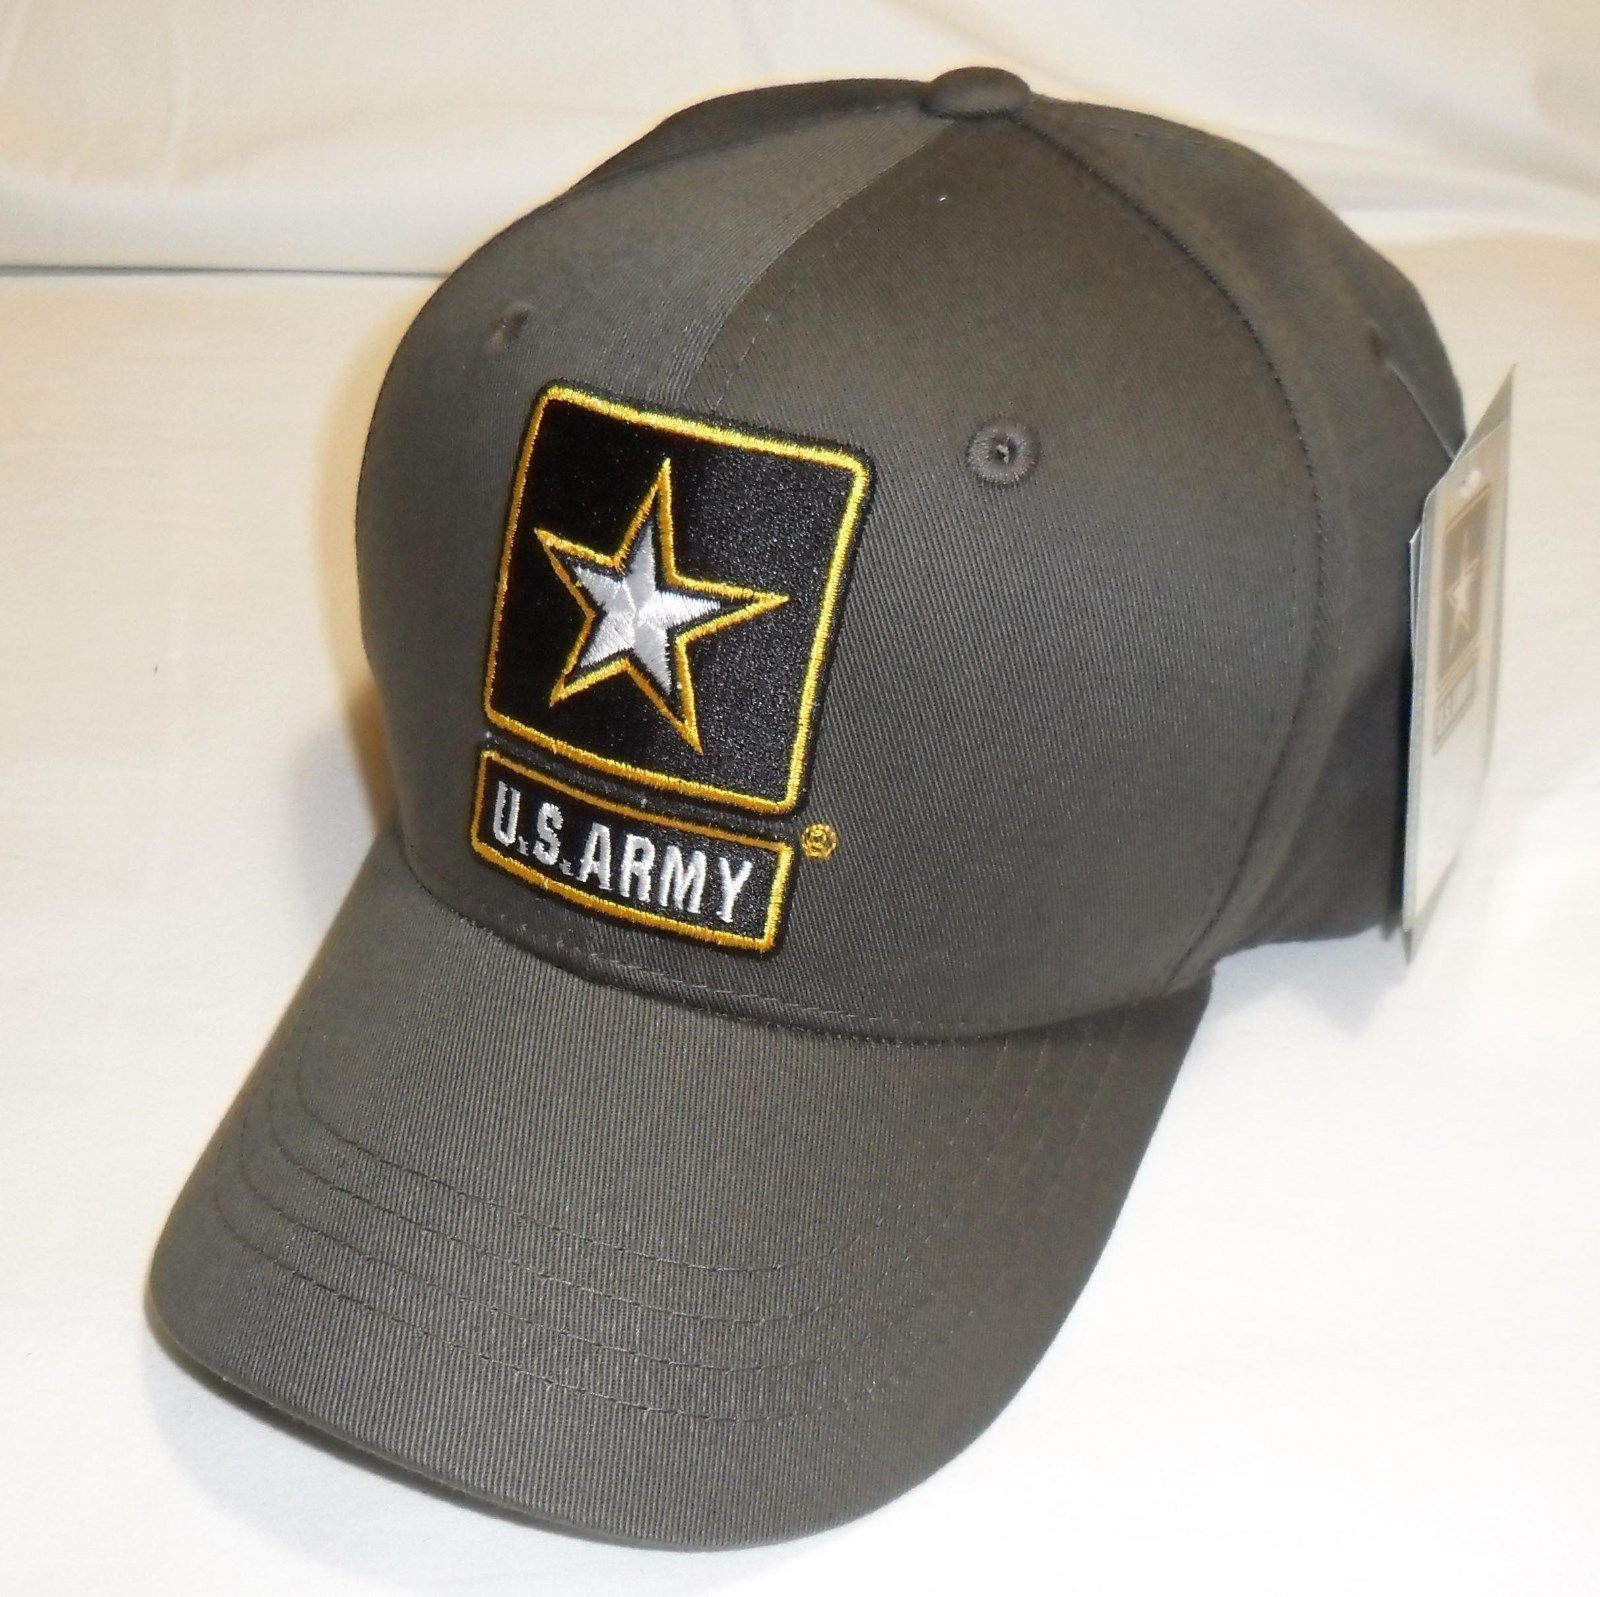 US ARMY With Army Star - U.S. Army ODG Military Hat Baseball Cap Hat